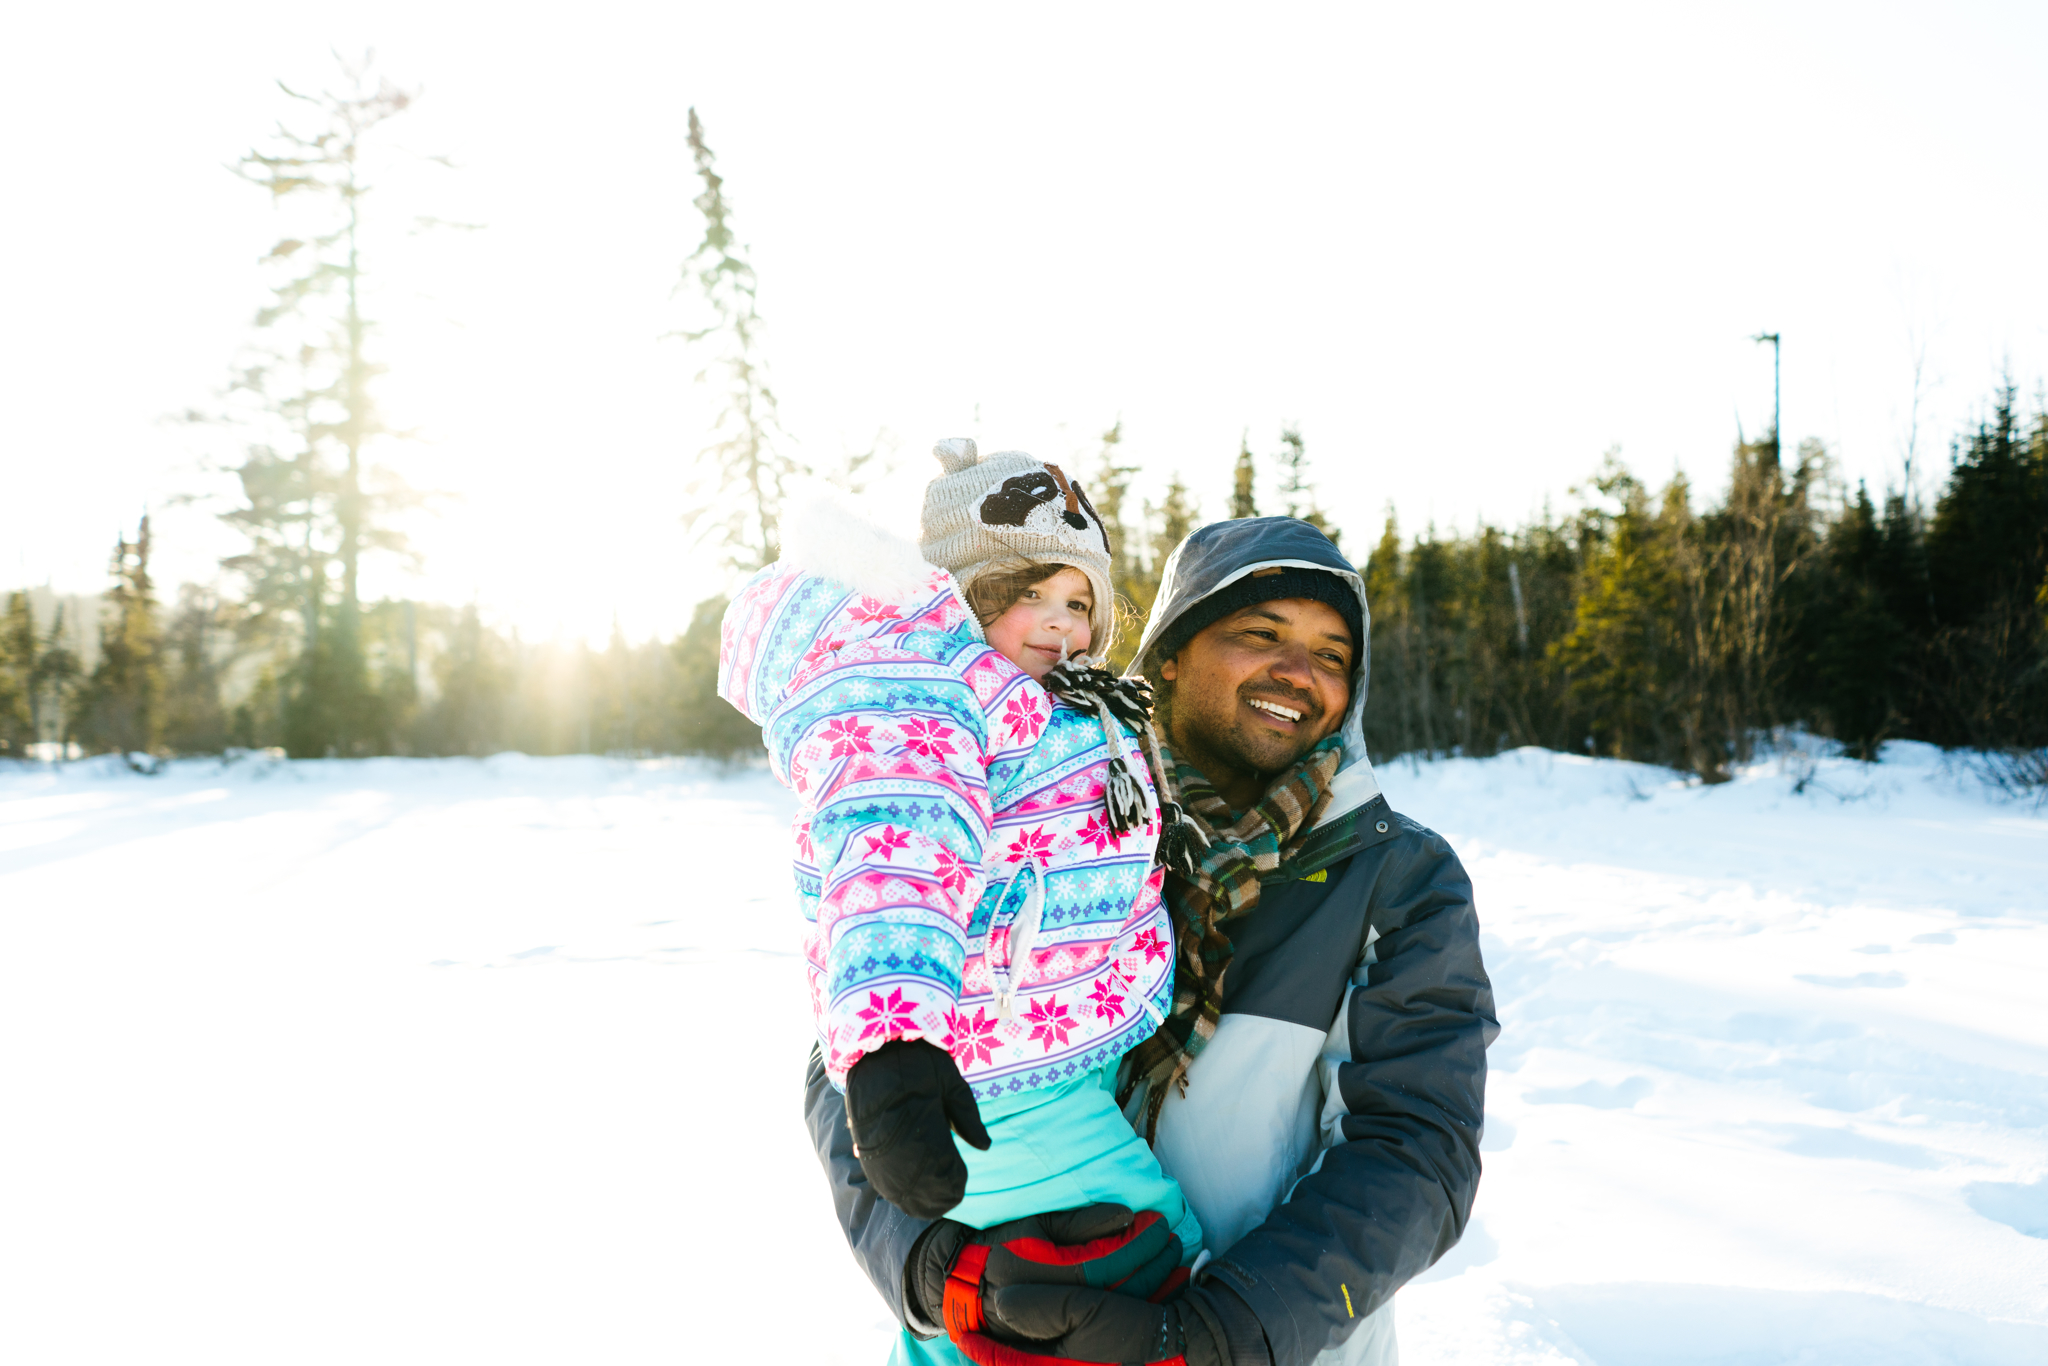 Daughter and Father in the snow